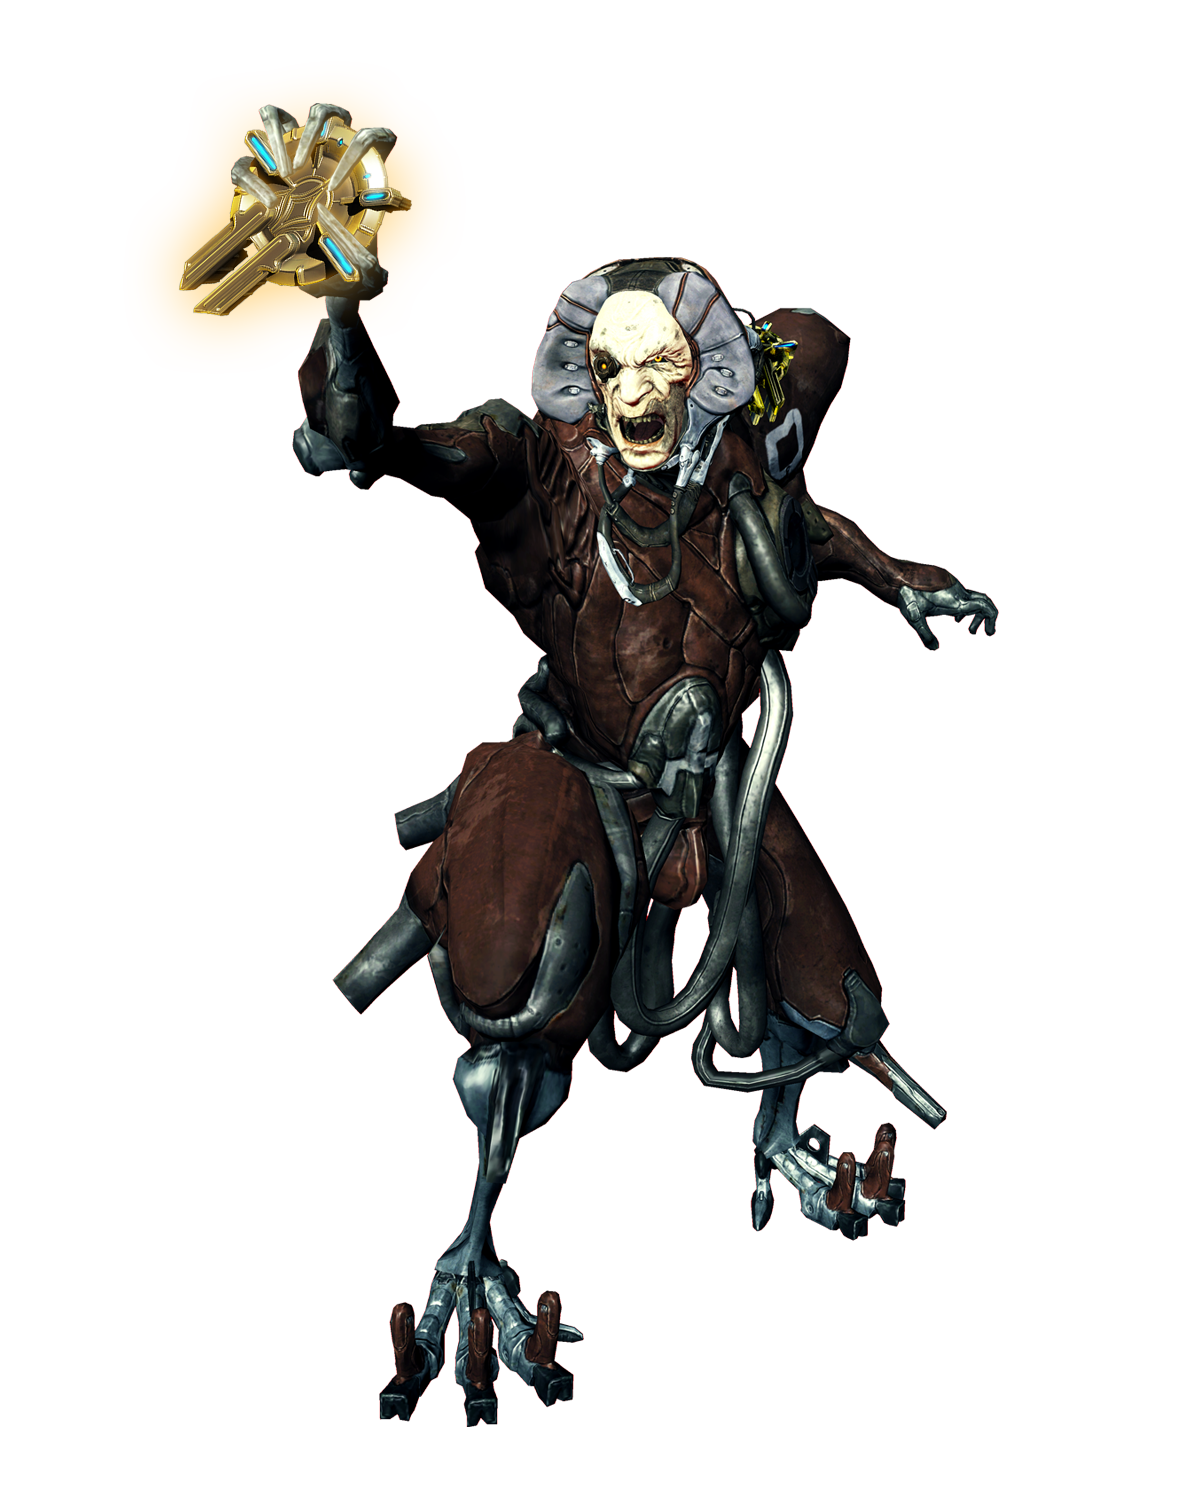 Captain vor warframe wiki fandom powered by wikia full body malvernweather Image collections